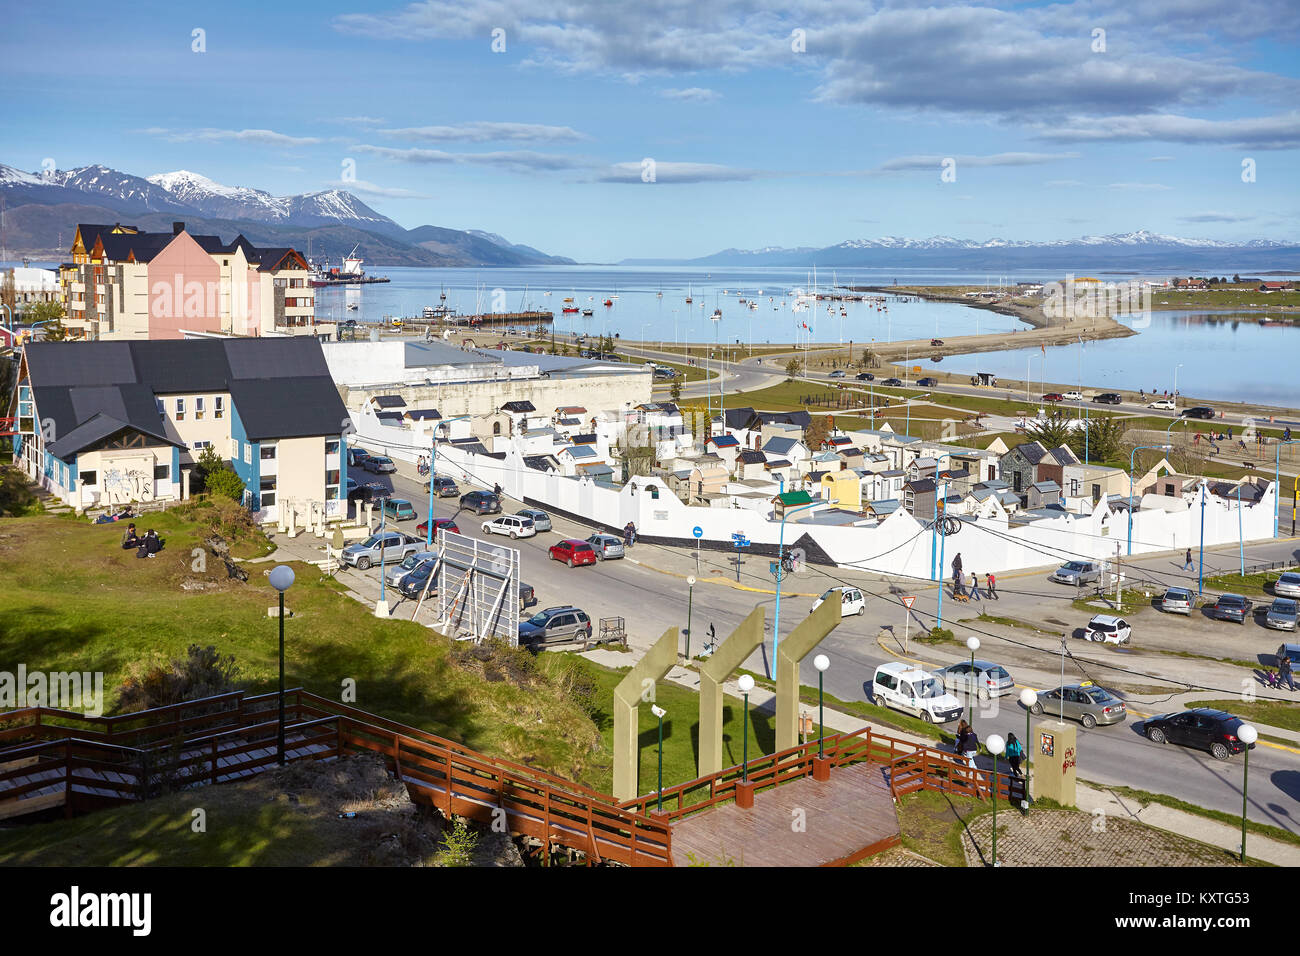 Ushuaia, Argentina - October 28, 2013: Old municipal cemetery located in downtown Ushuaia. - Stock Image